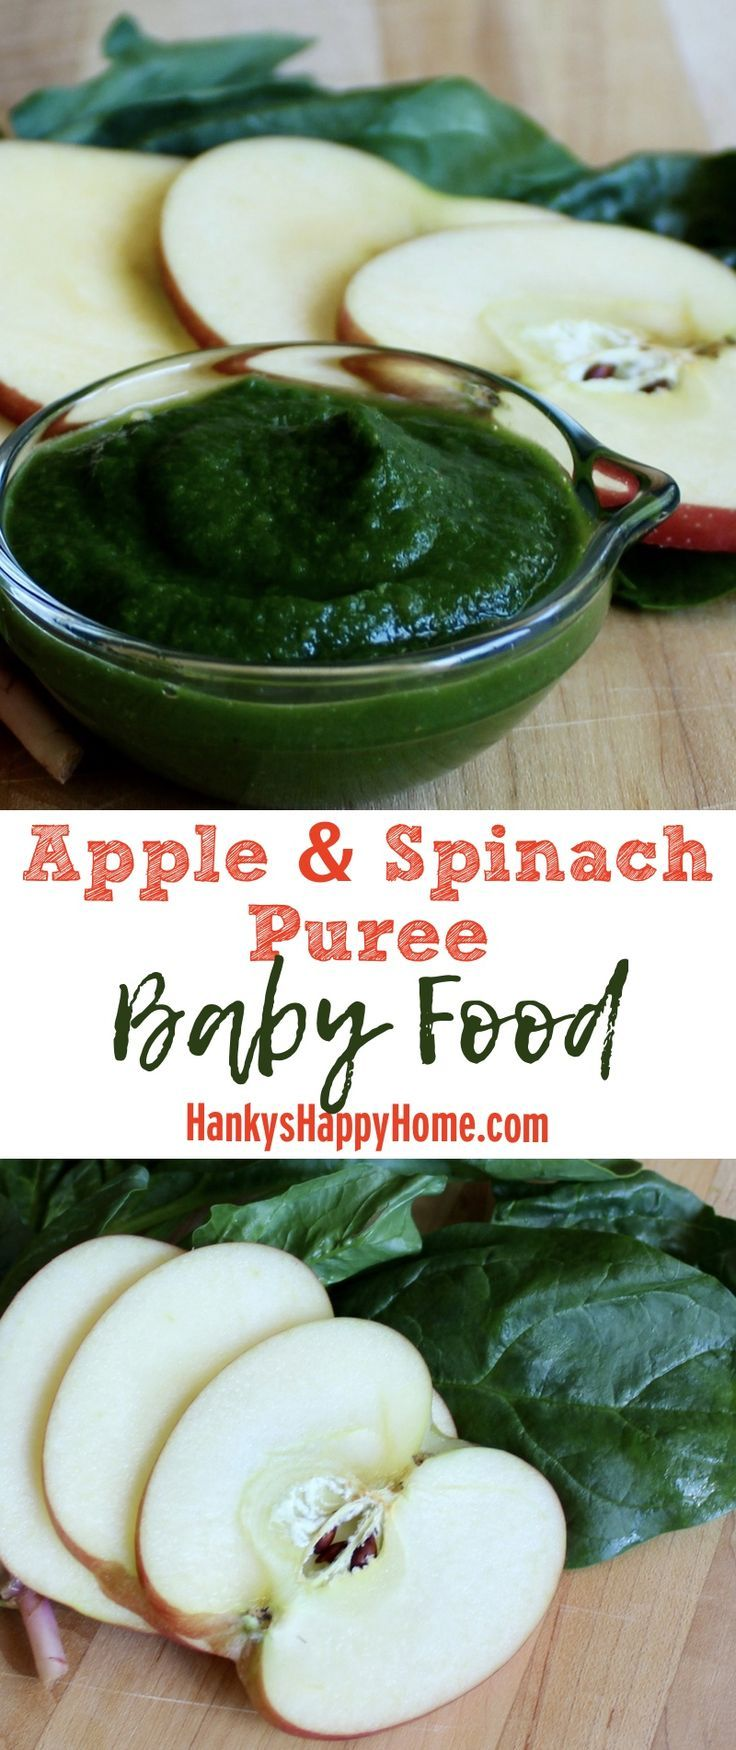 This easy homemade Apple & Spinach Puree is packed with nutrients and tastes delicious.